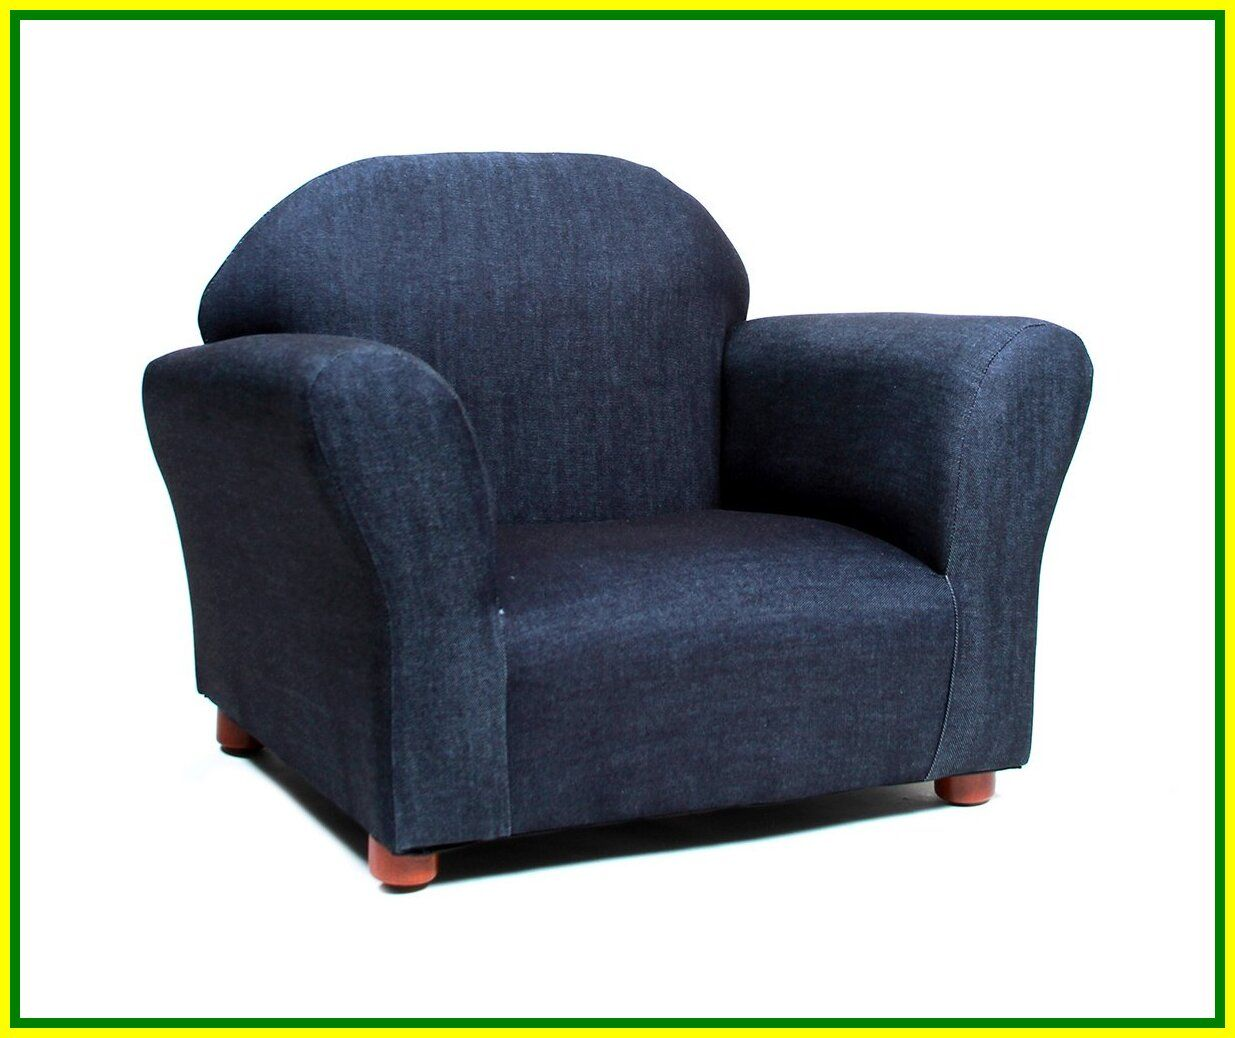 59 reference of sofa bed chair amazon in 2020 Kids